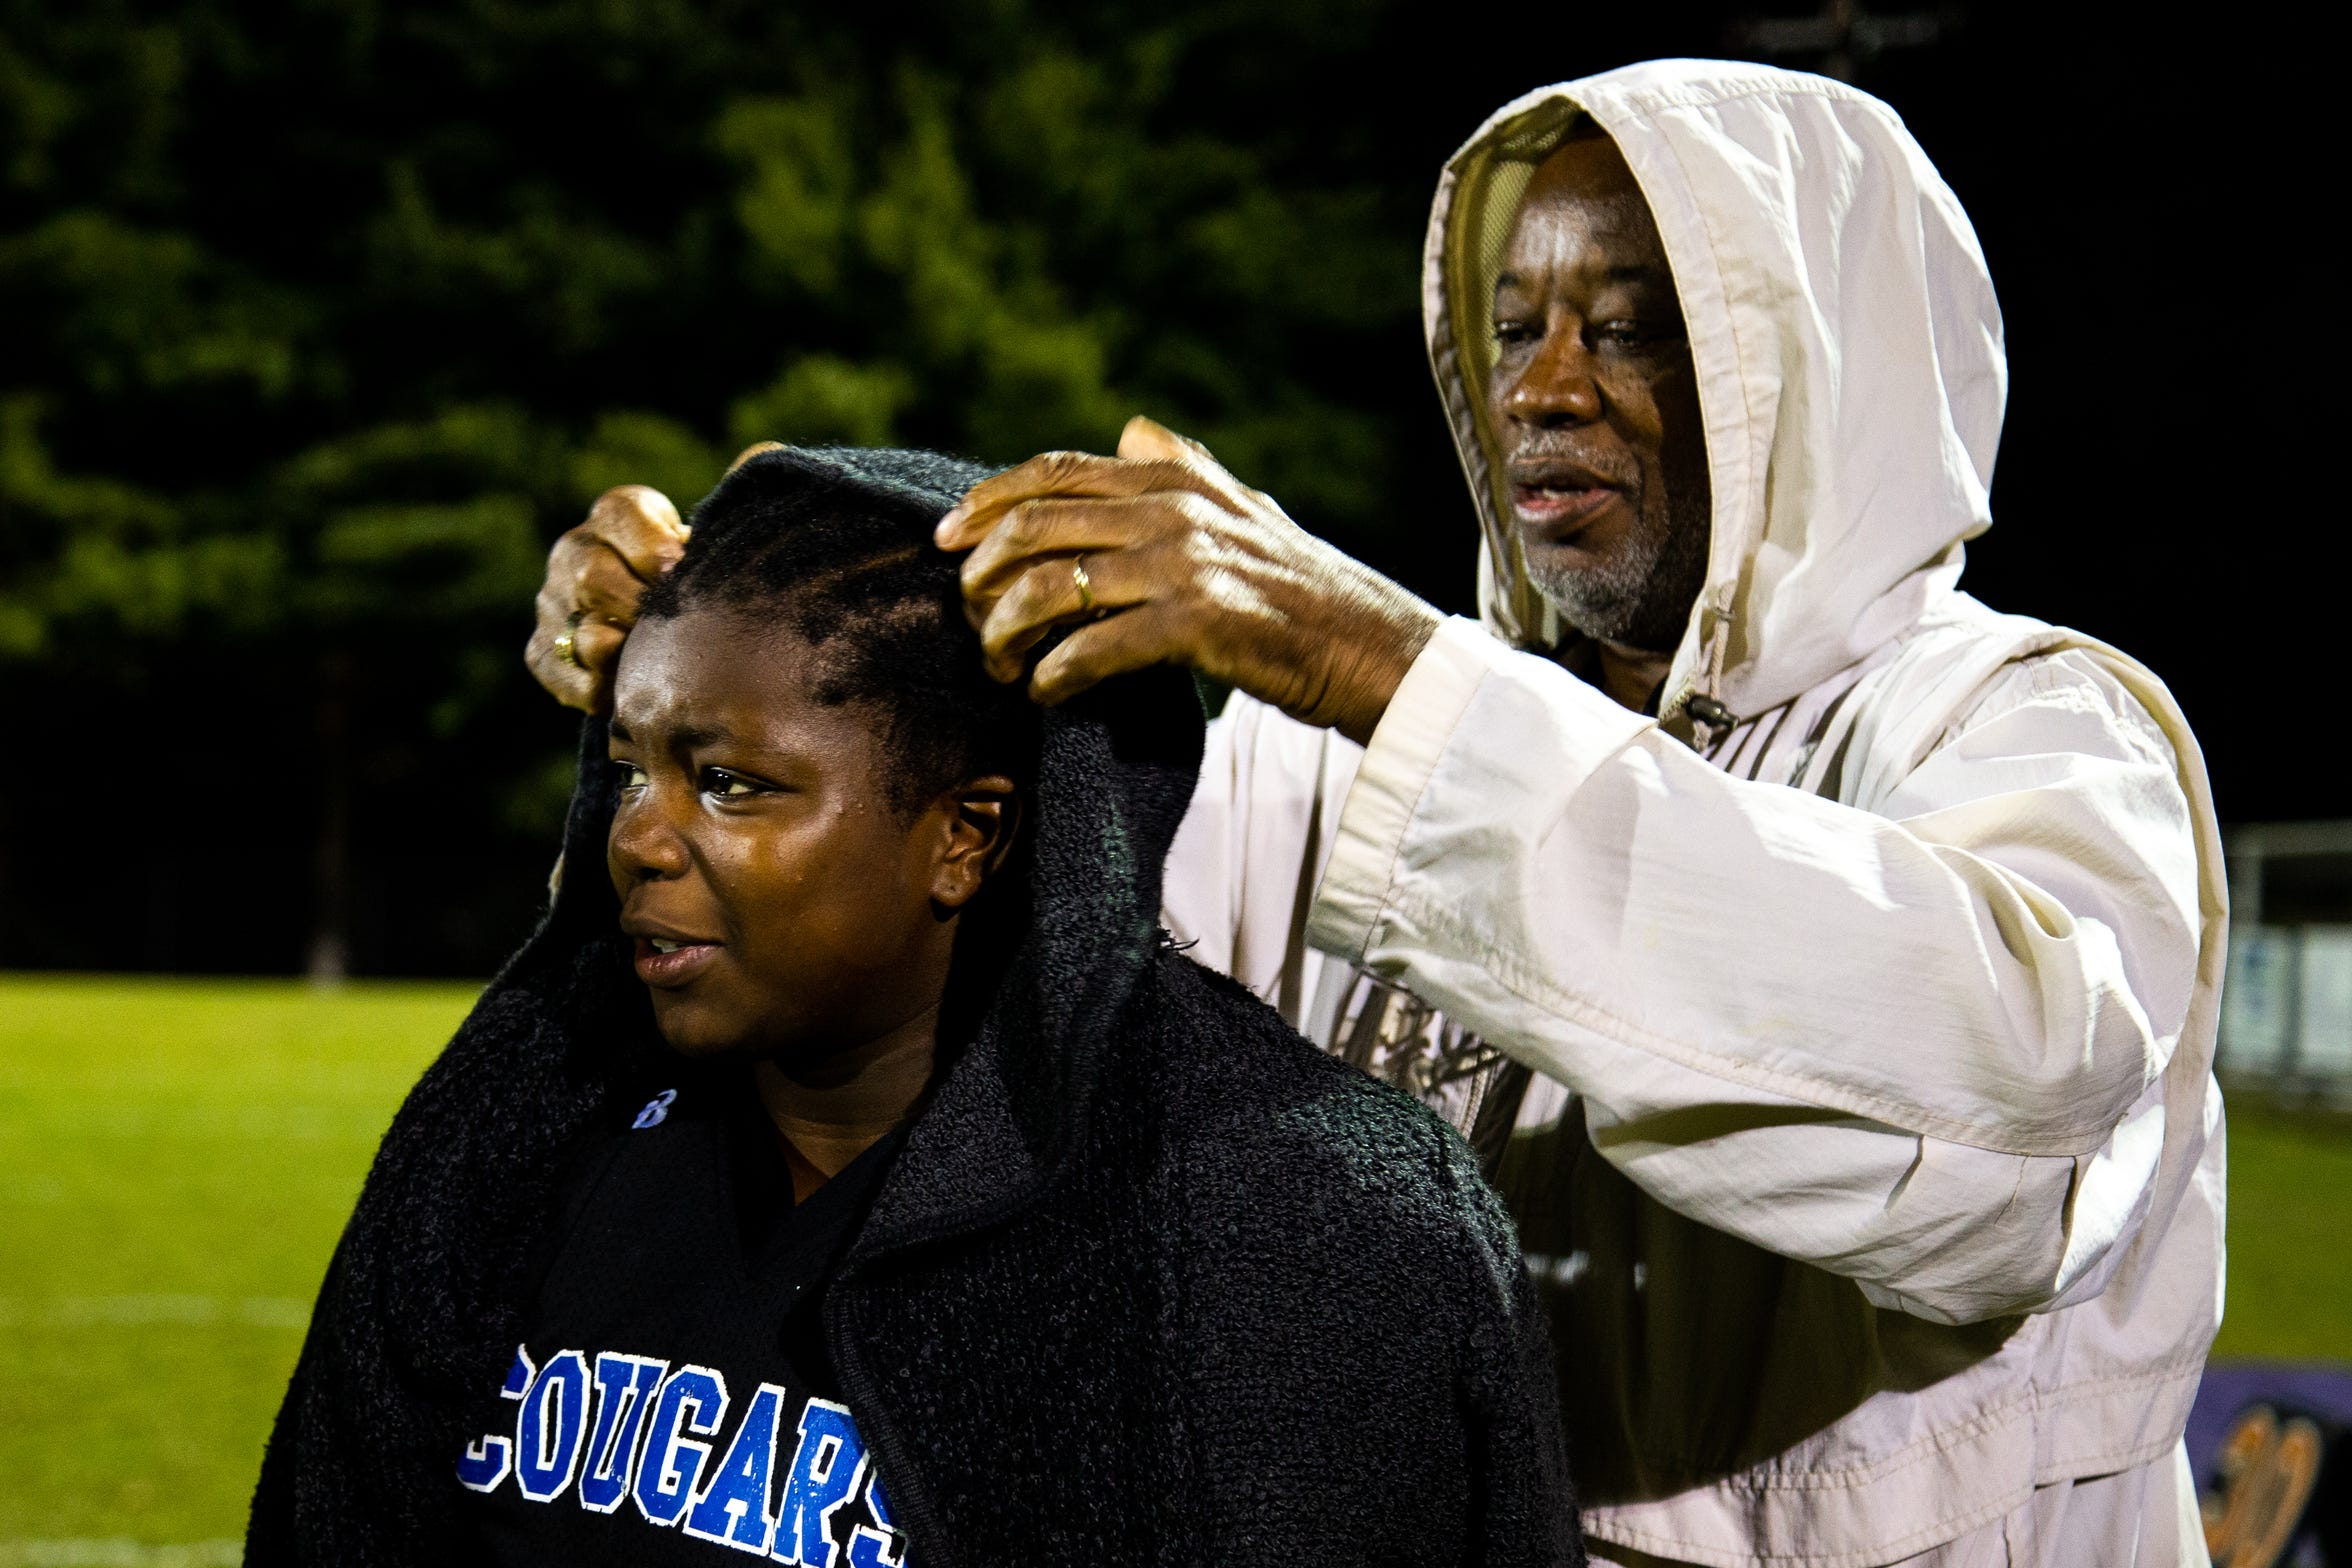 Madisen Bryant's father Joe Bryant covers them with a jacket after the game against the Cowboys at Clarksville High School Thursday, Oct. 18, 2018, in Clarksville, Tenn. This game reunited Ari and Madisen, who took dance classes together when they were younger, but hadn't spoken since.